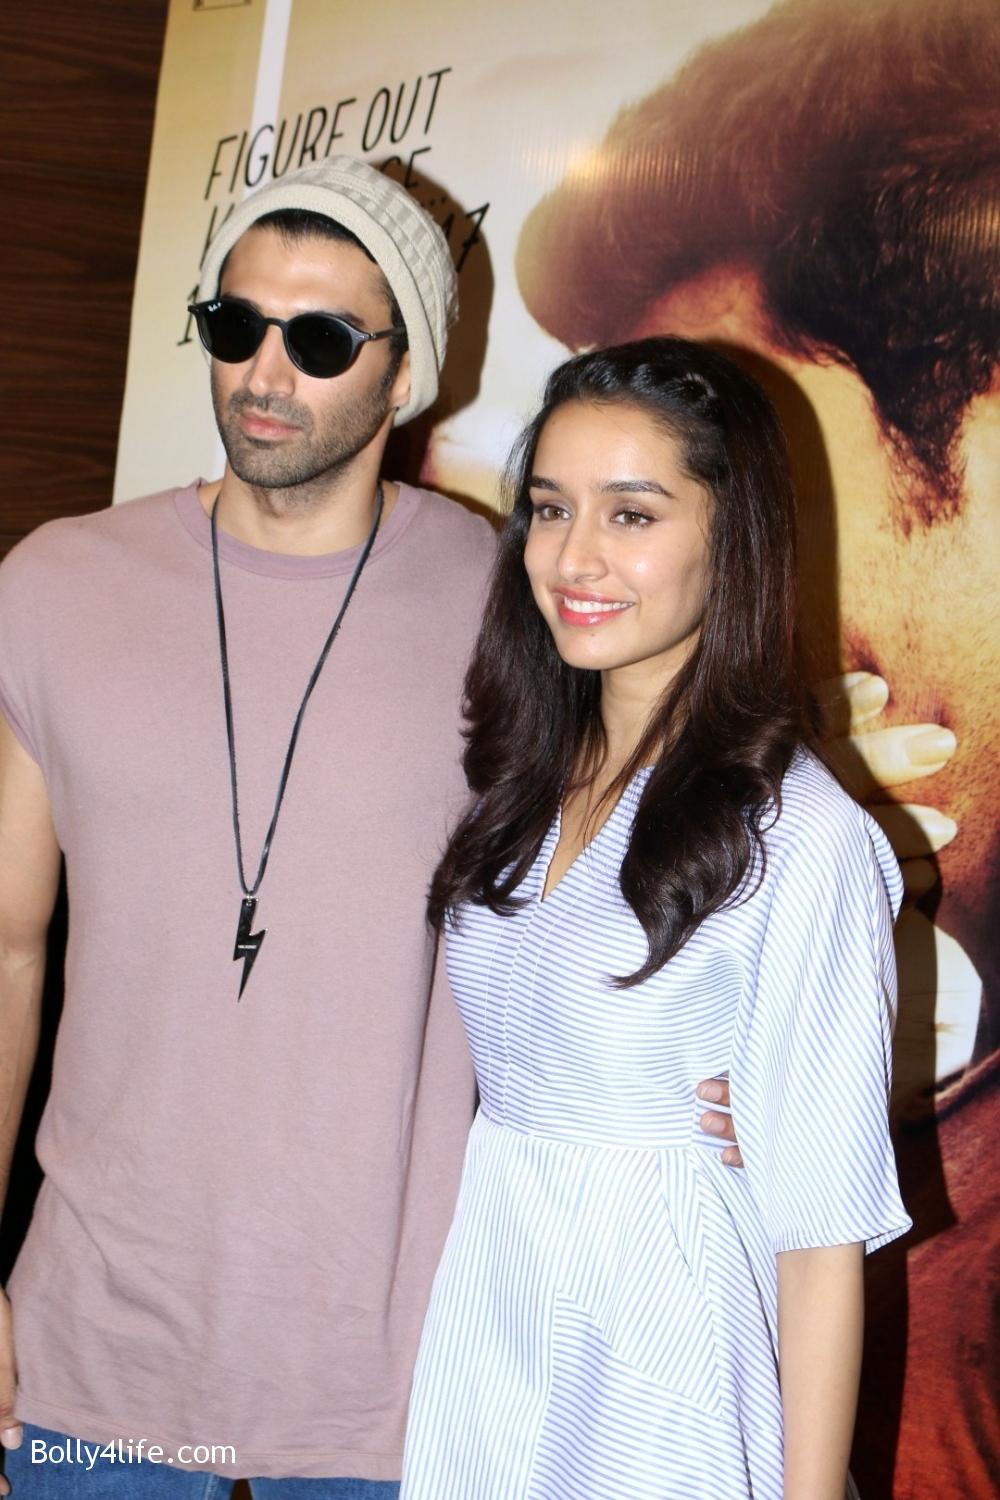 Aditya-Roy-Kapur-and-Shraddha-Kapoor-during-the-media-interaction-for-the-film-Ok-Jaanu-21.jpg